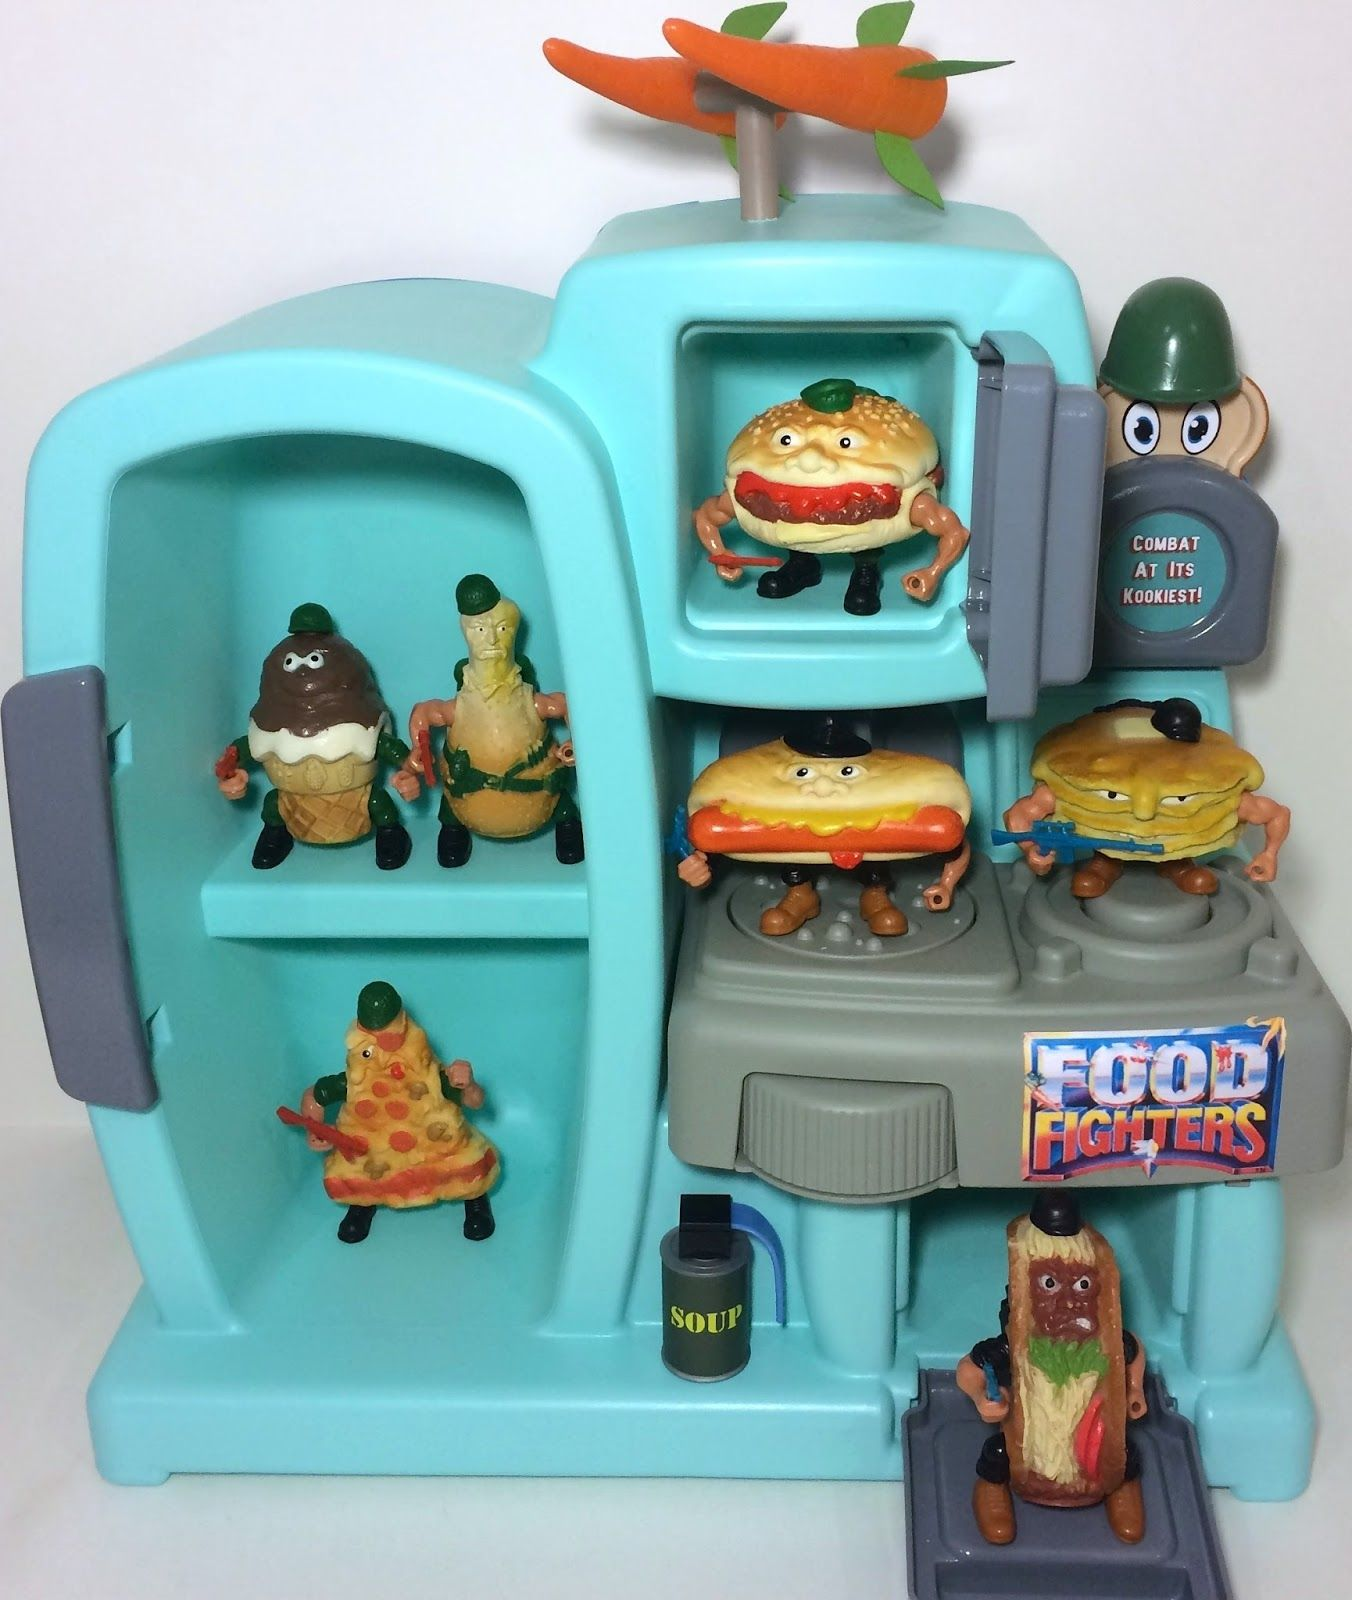 80 Toy Action Figure Shelves - Mattel-Food-Fighters-Refrigerator-Playset-1_Amazing 80 Toy Action Figure Shelves - Mattel-Food-Fighters-Refrigerator-Playset-1  You Should Have_66444.jpg